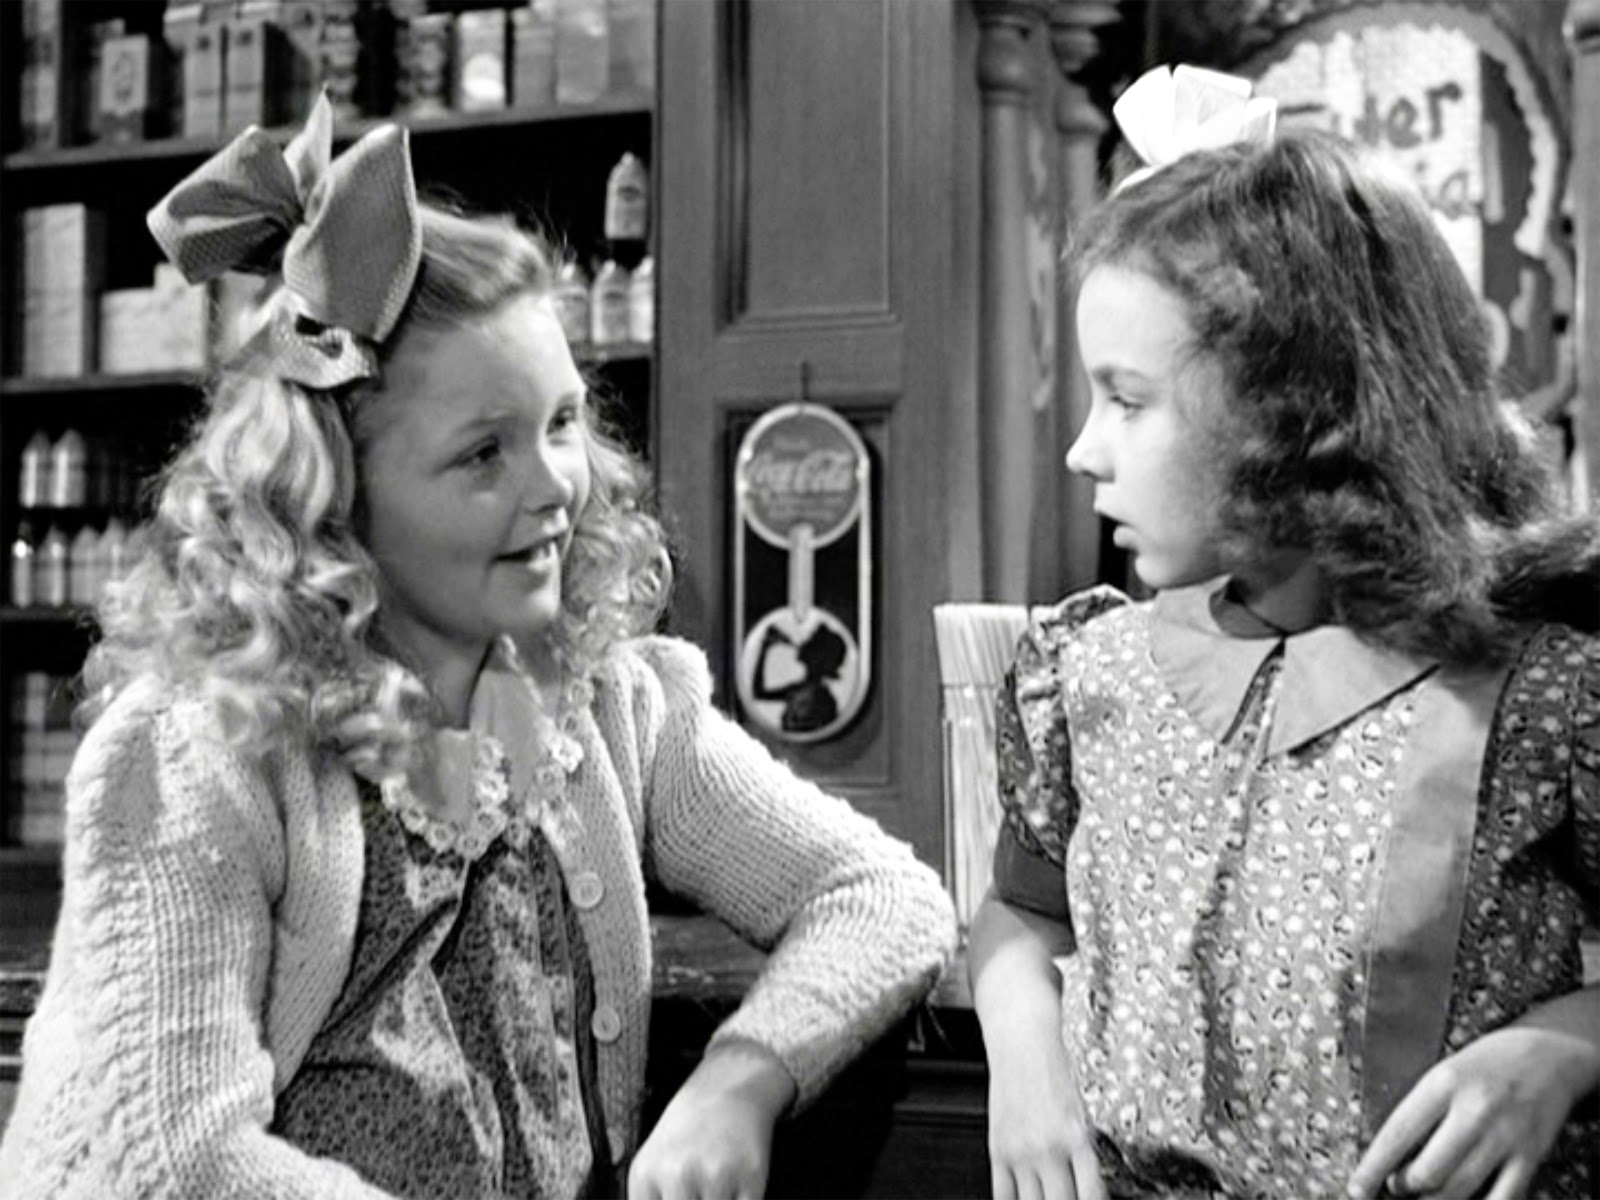 Violet and Mary in It's a Wonderful Life